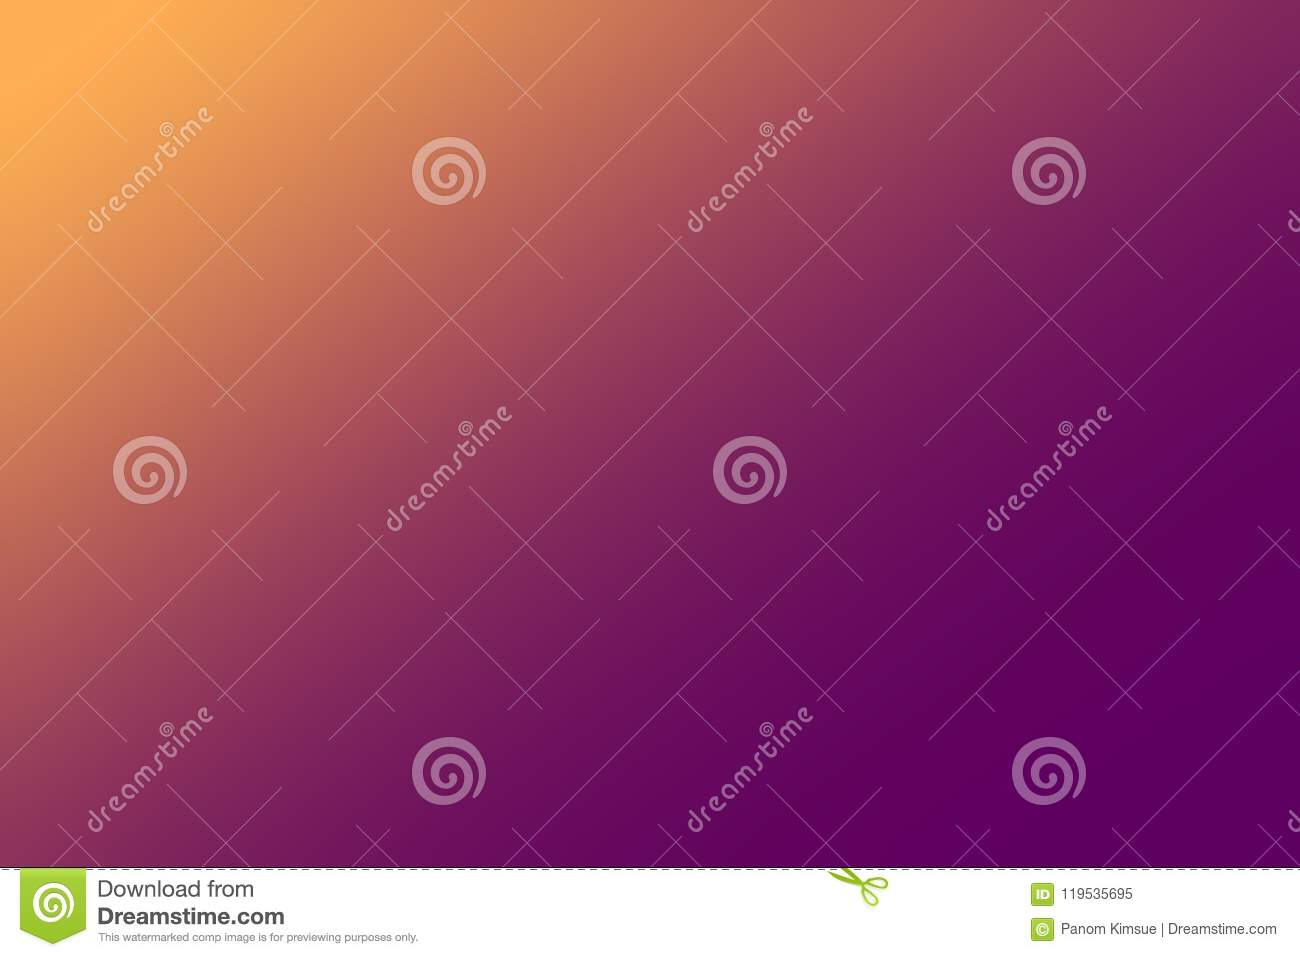 Blurred Yellow And Purple Color Background Abstract Gradient Desktop Wallpaper Design For Your Content